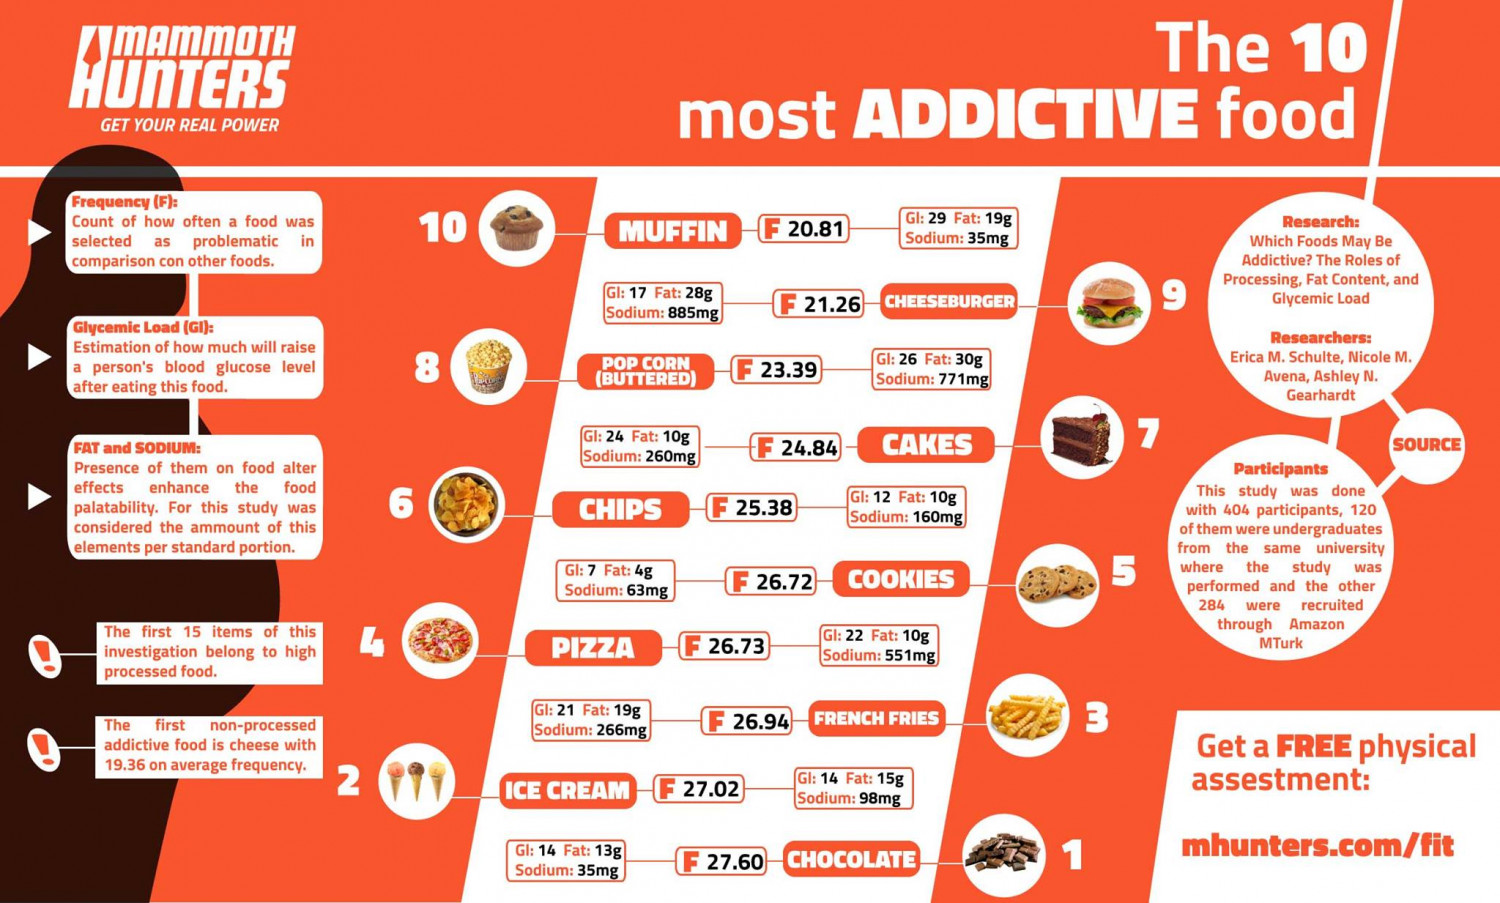 The 10 most addictive food items Infographic